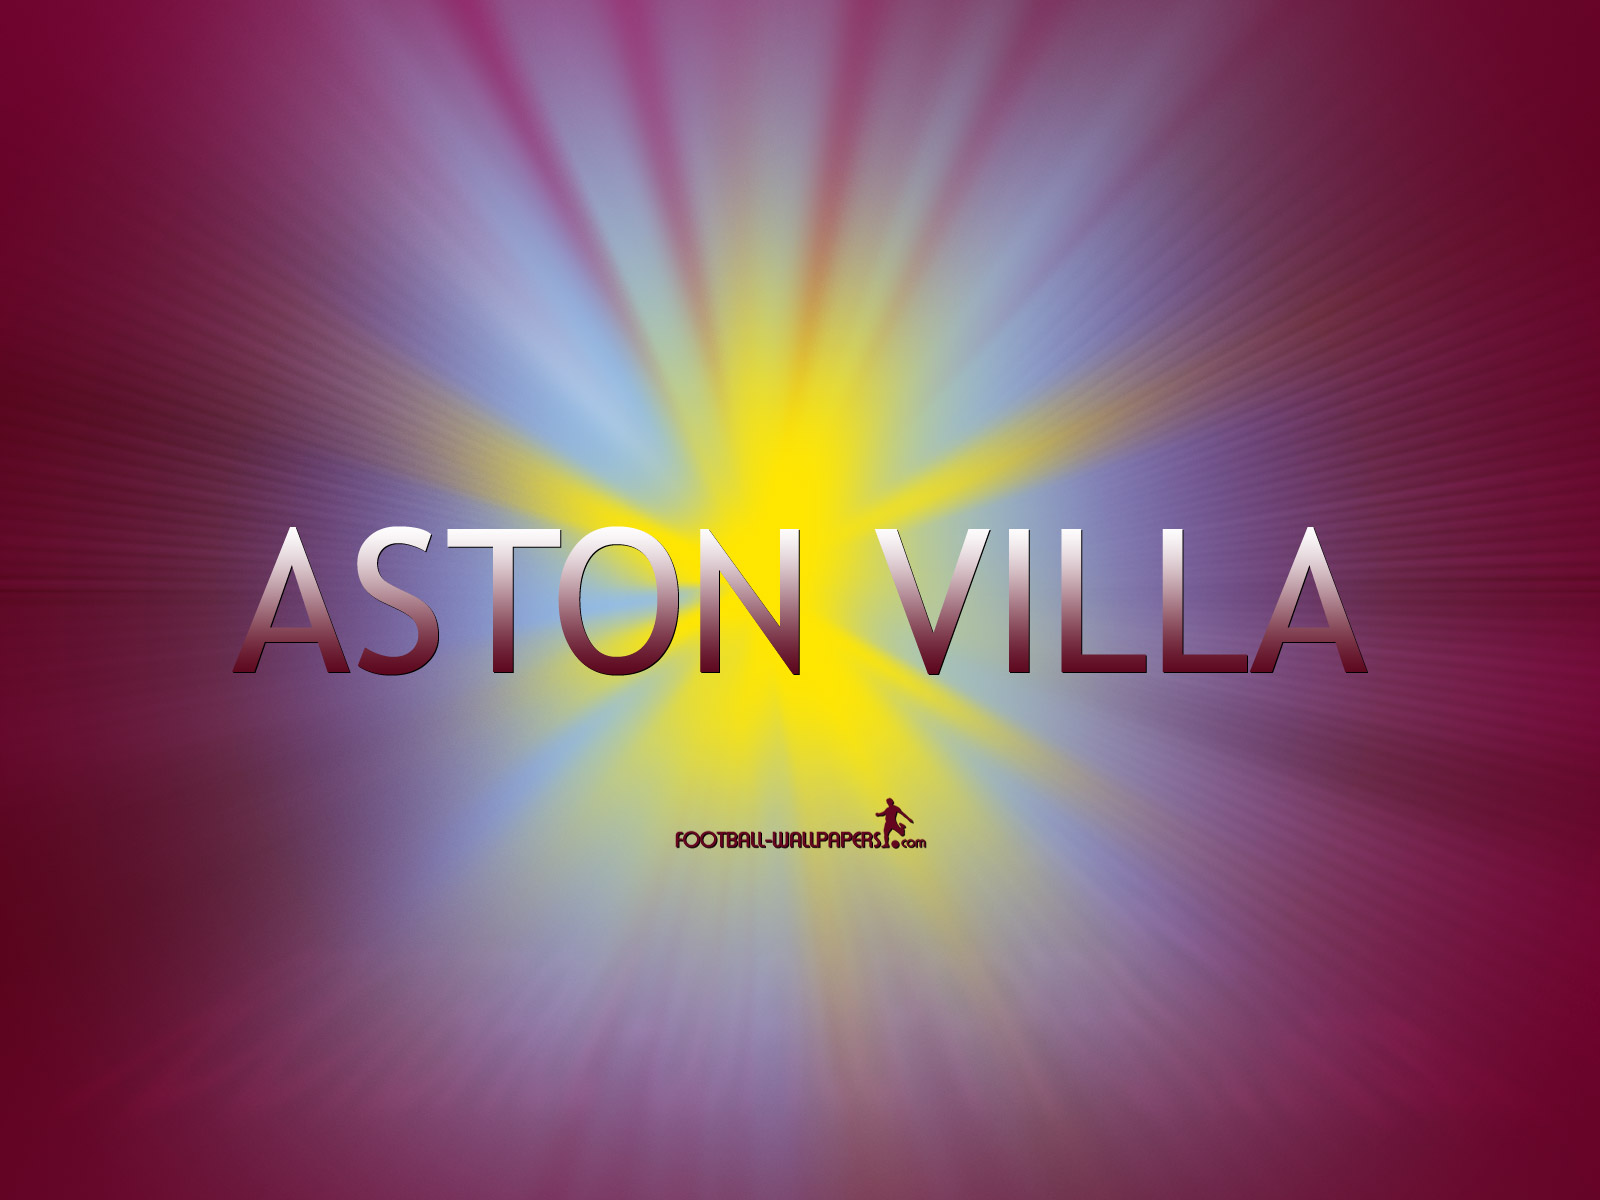 aston villa - photo #31